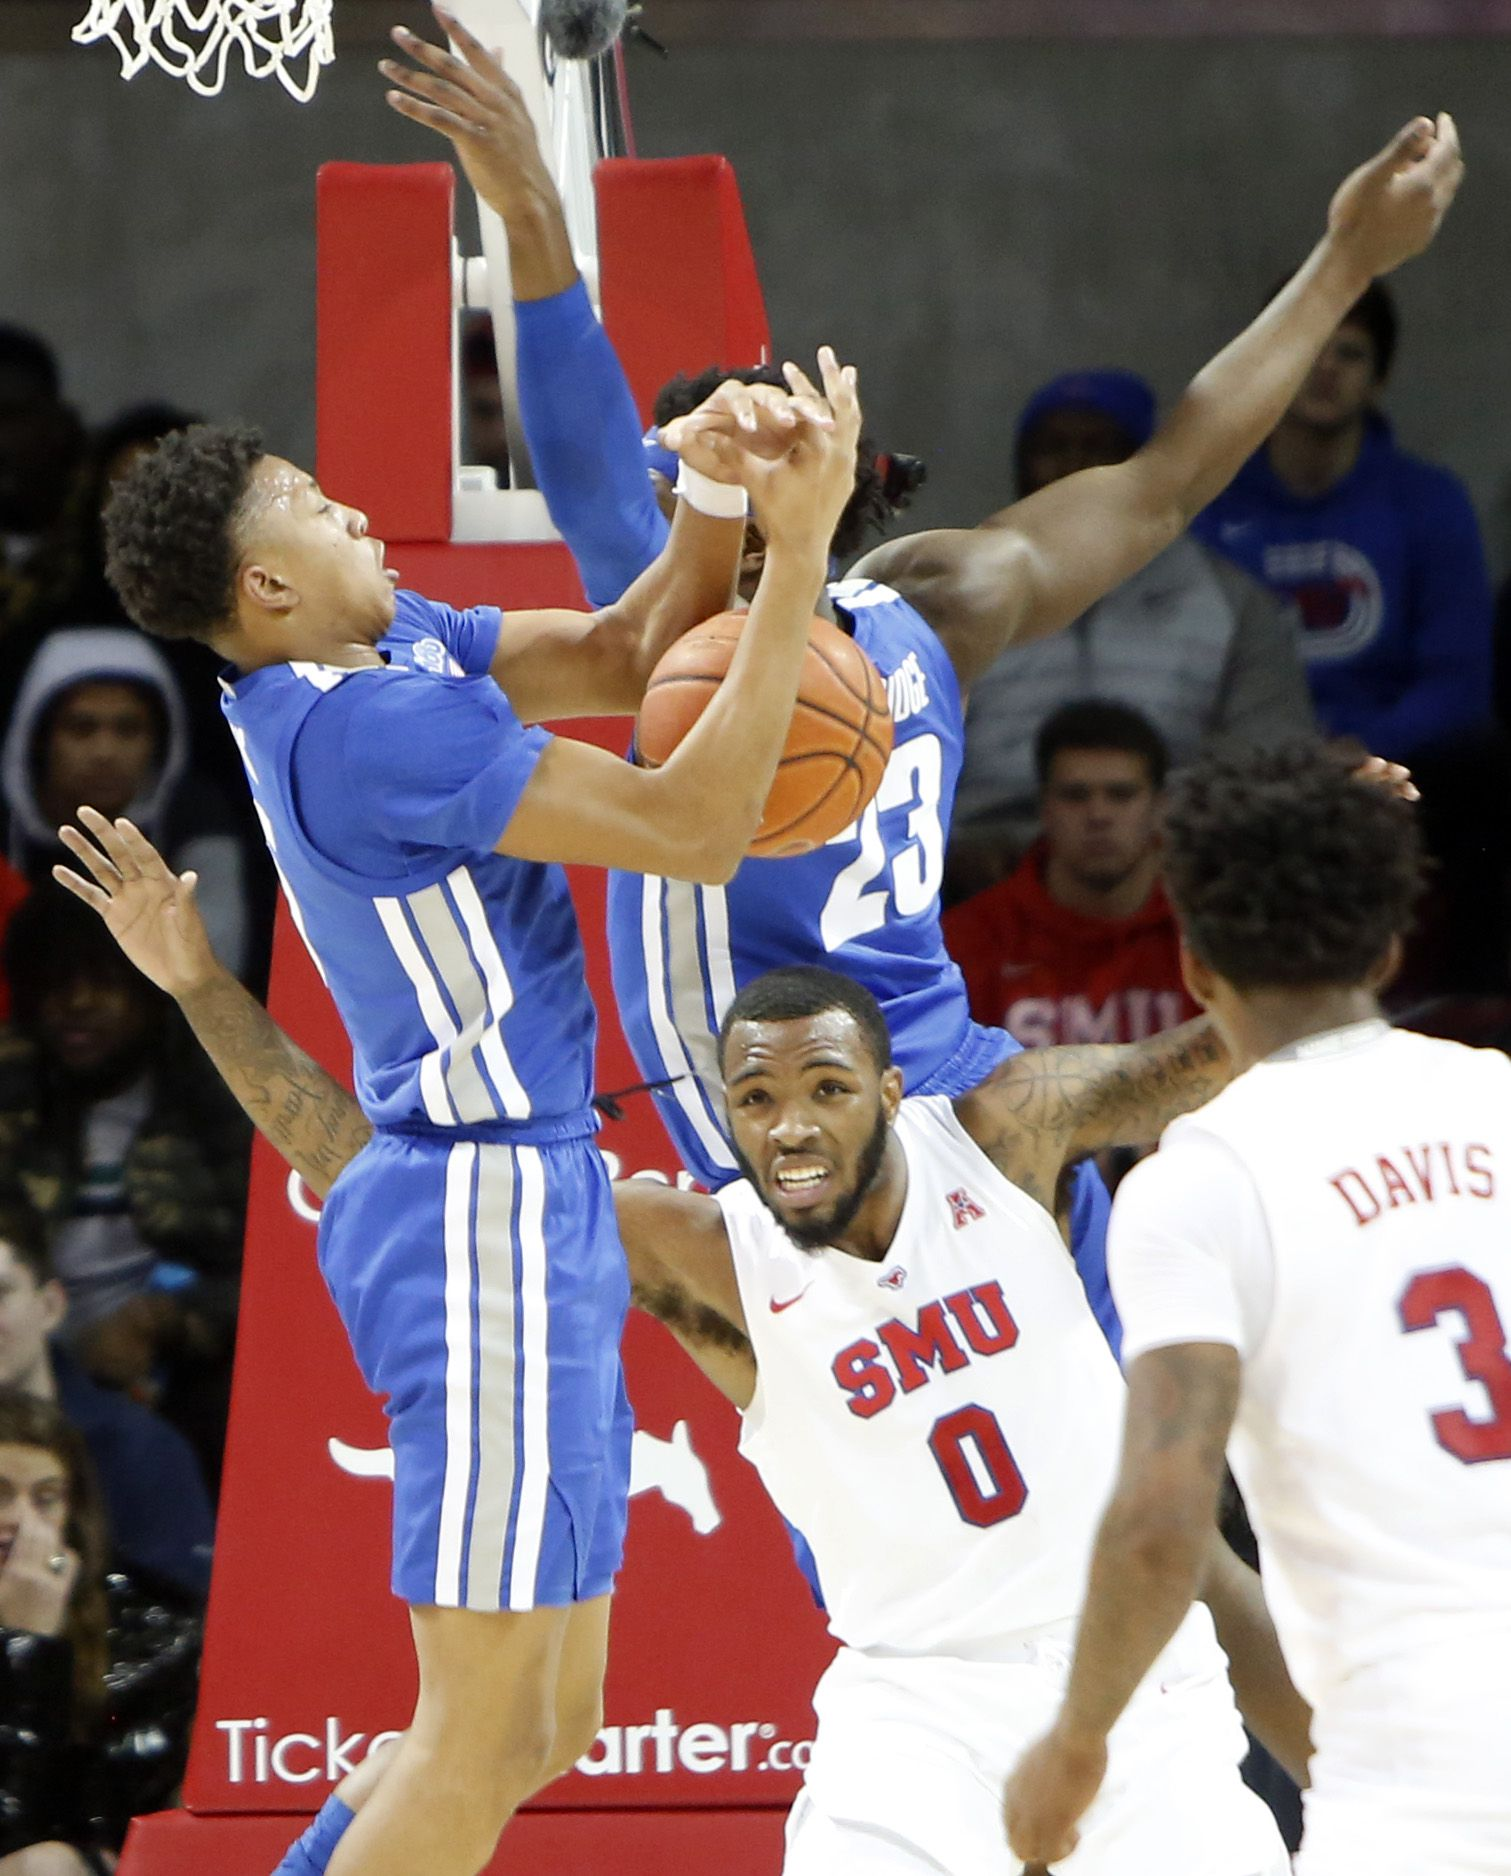 SMU guard Tyson Jolly (0) found himself in the middle of a battle for a rebound against Memphis guard Boogie Ellis (5) and center Malcolm Dandridge (23) during first half action. The two teams from the NCAA's American Athletic Conference played their men's basketball game at SMU's Moody Coliseum in Dallas on February 25, 2020.